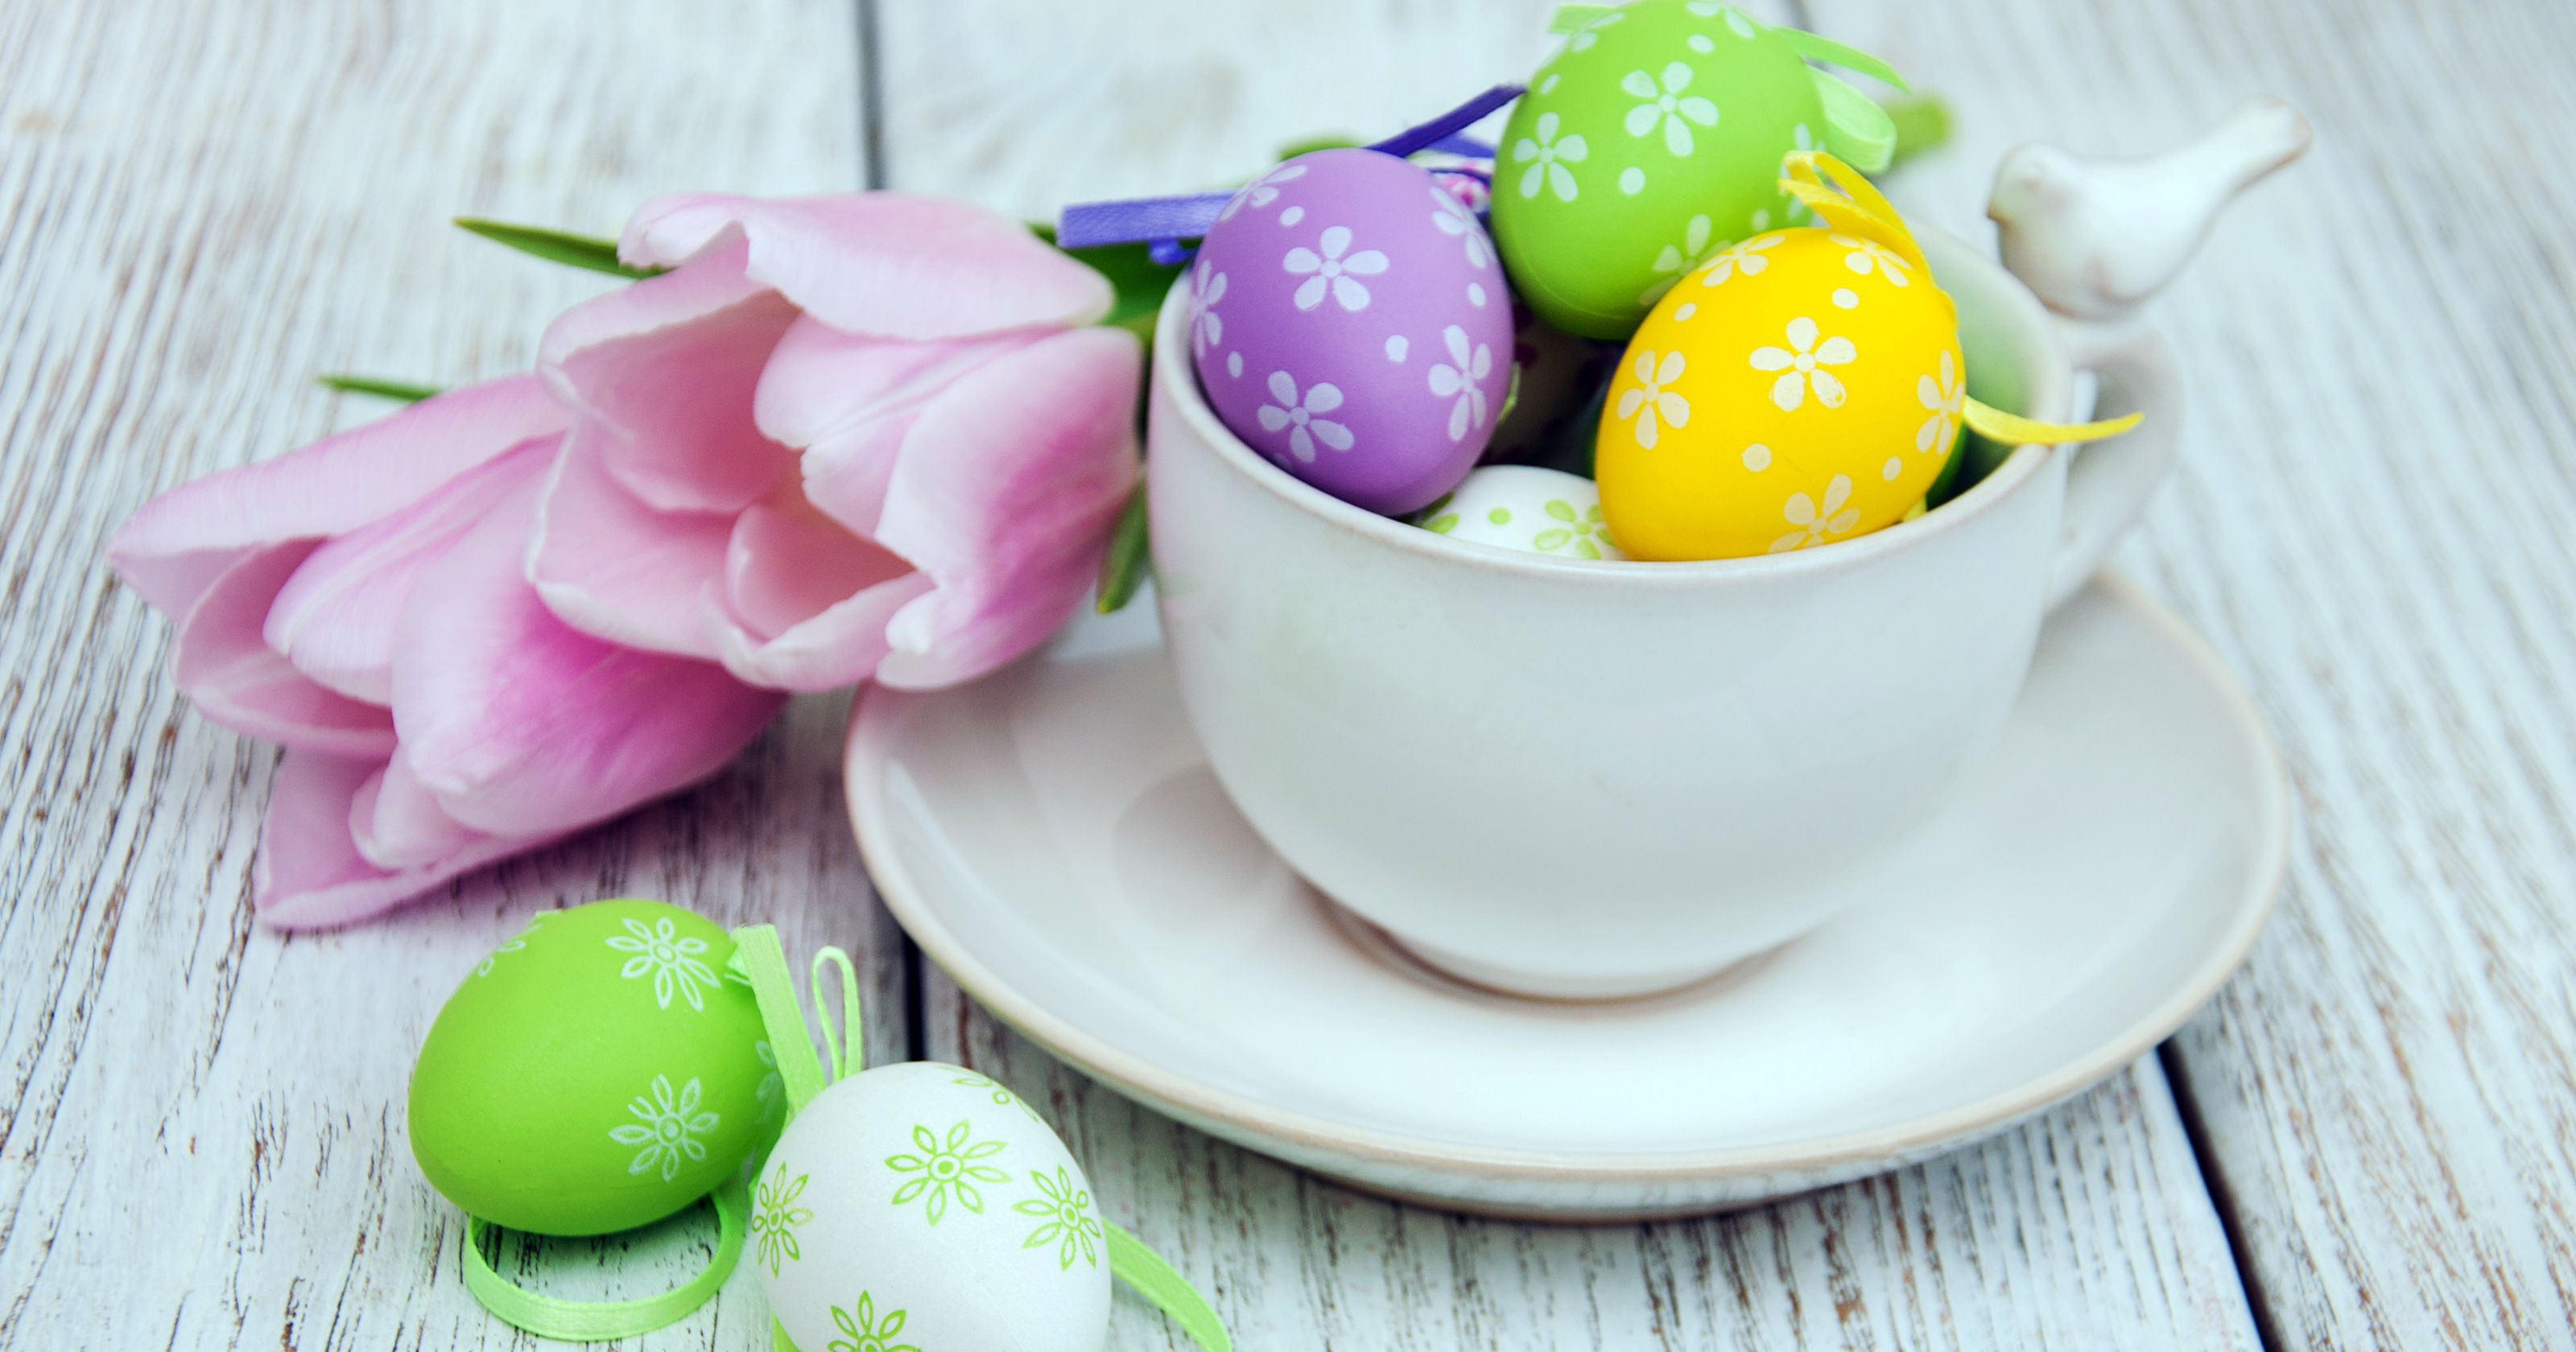 Easter Dinner Specials  Easter dining Holiday brunch and dinner specials in